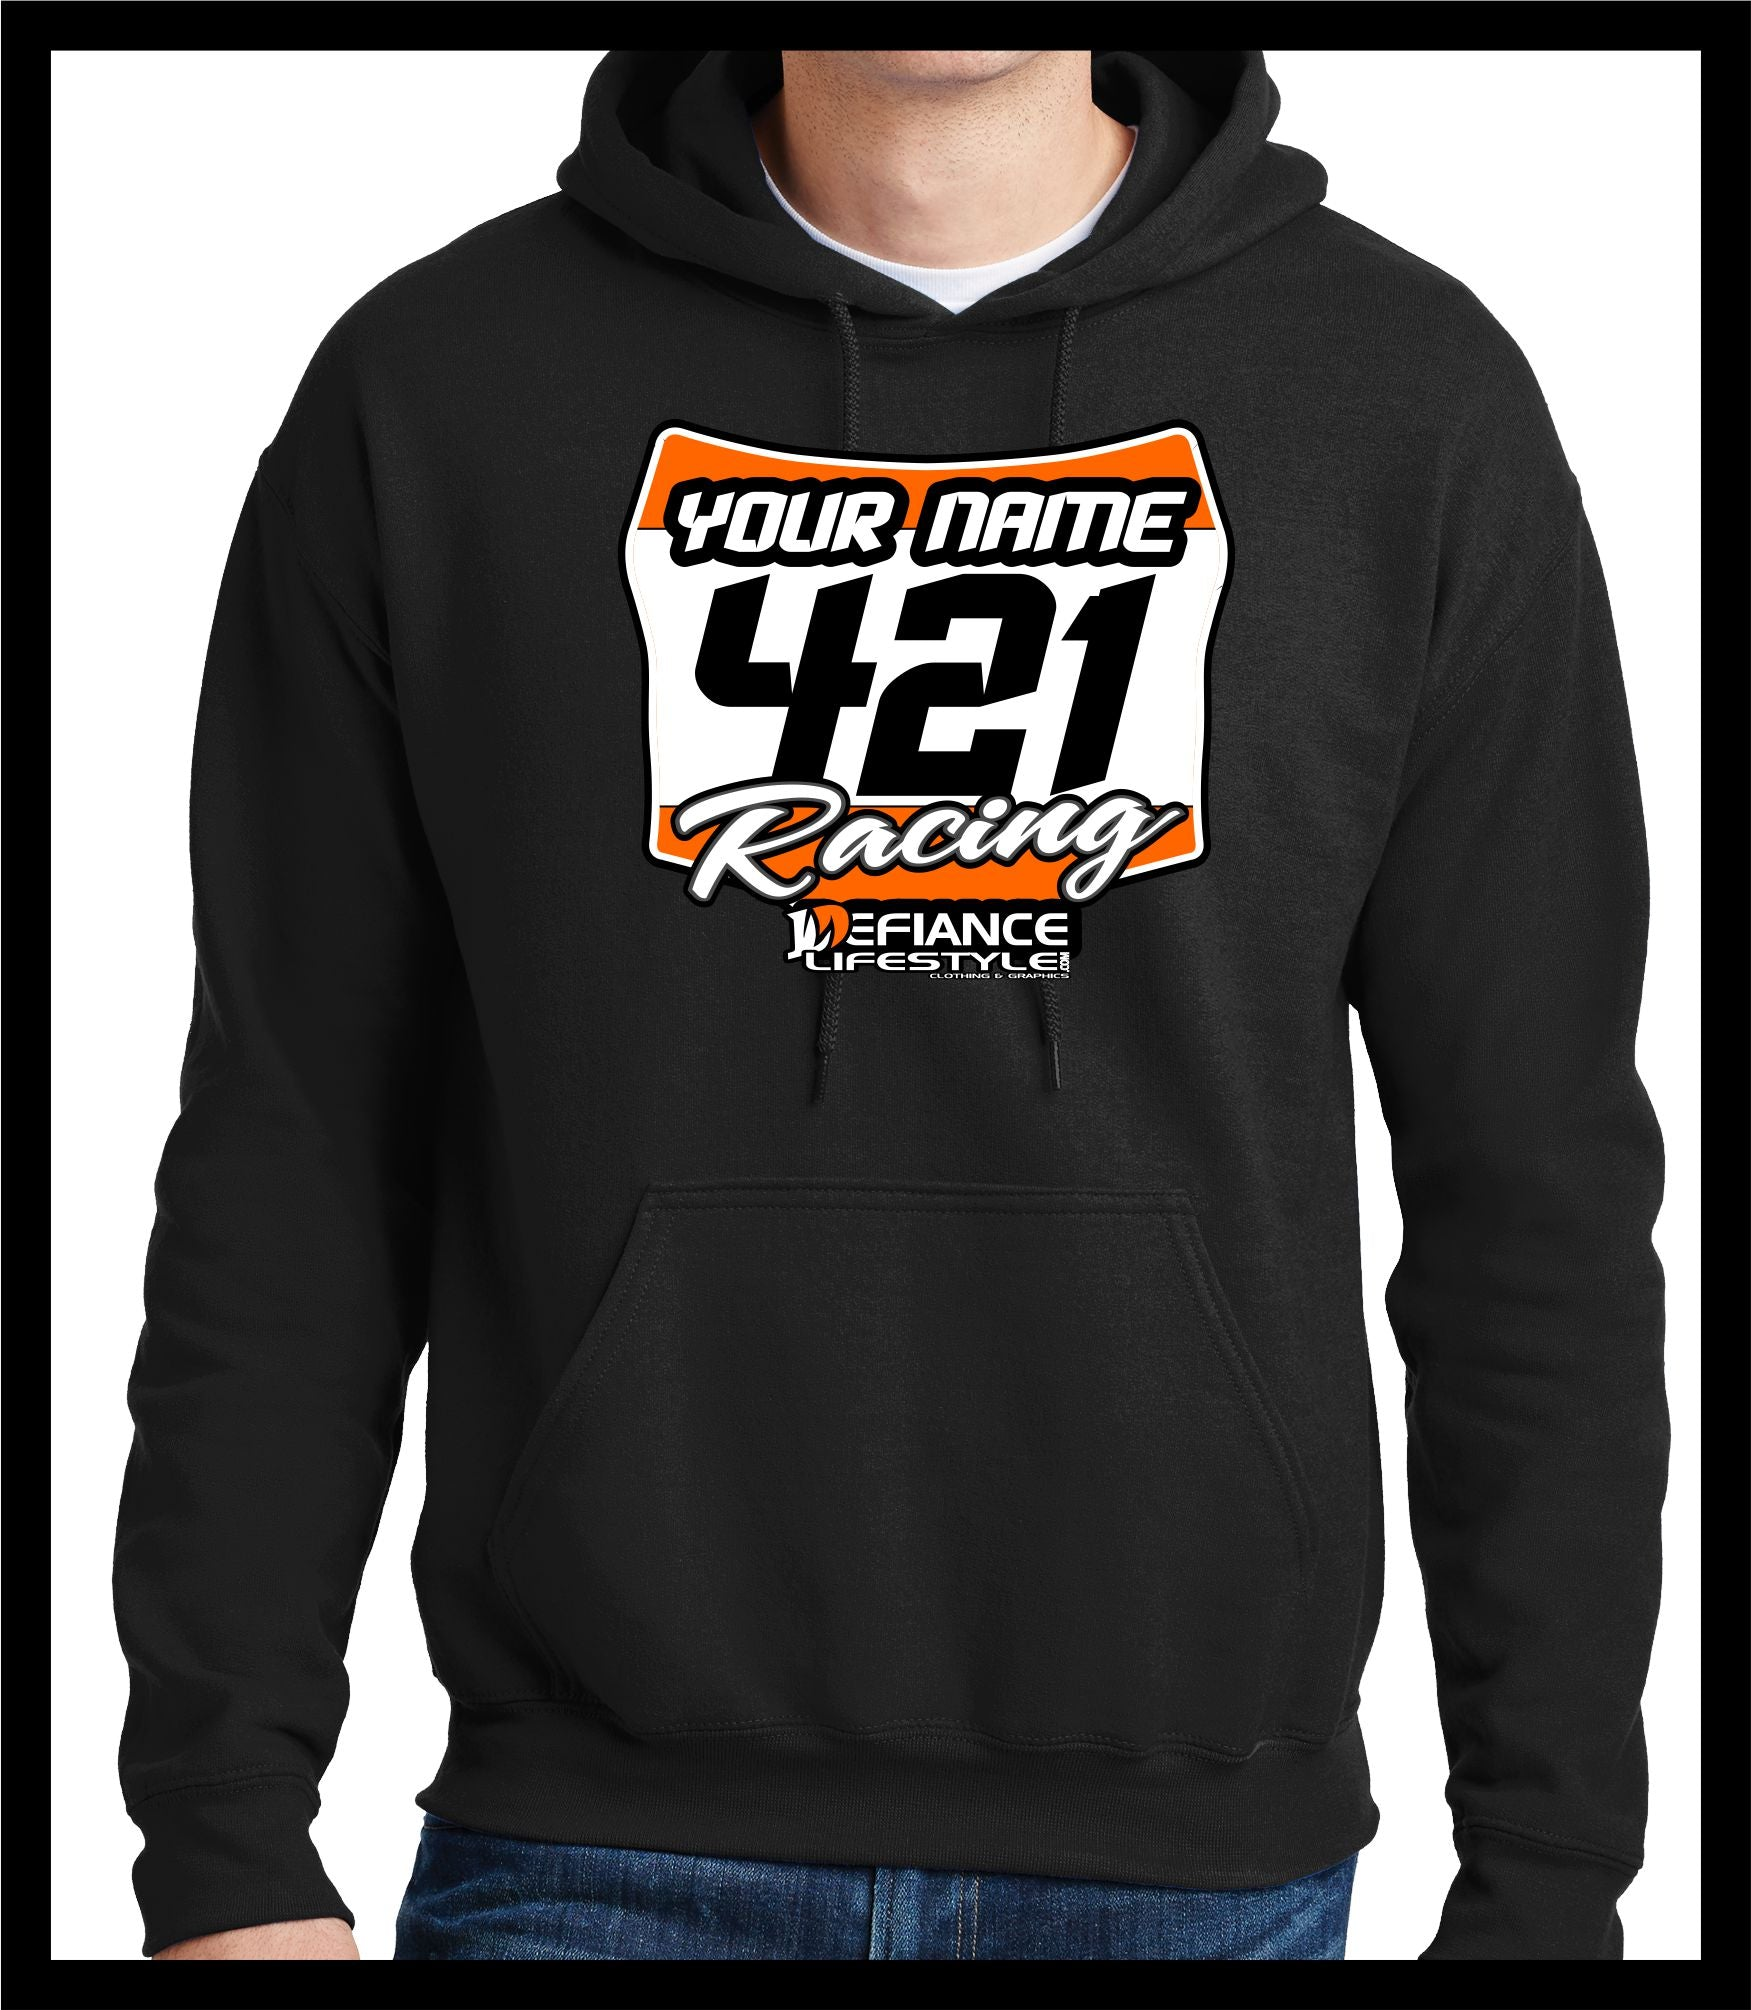 Racer Plate Motocross Sweatshirt - BLACK - Defiance Lifestyle, Race Apparel - Casual to Custom